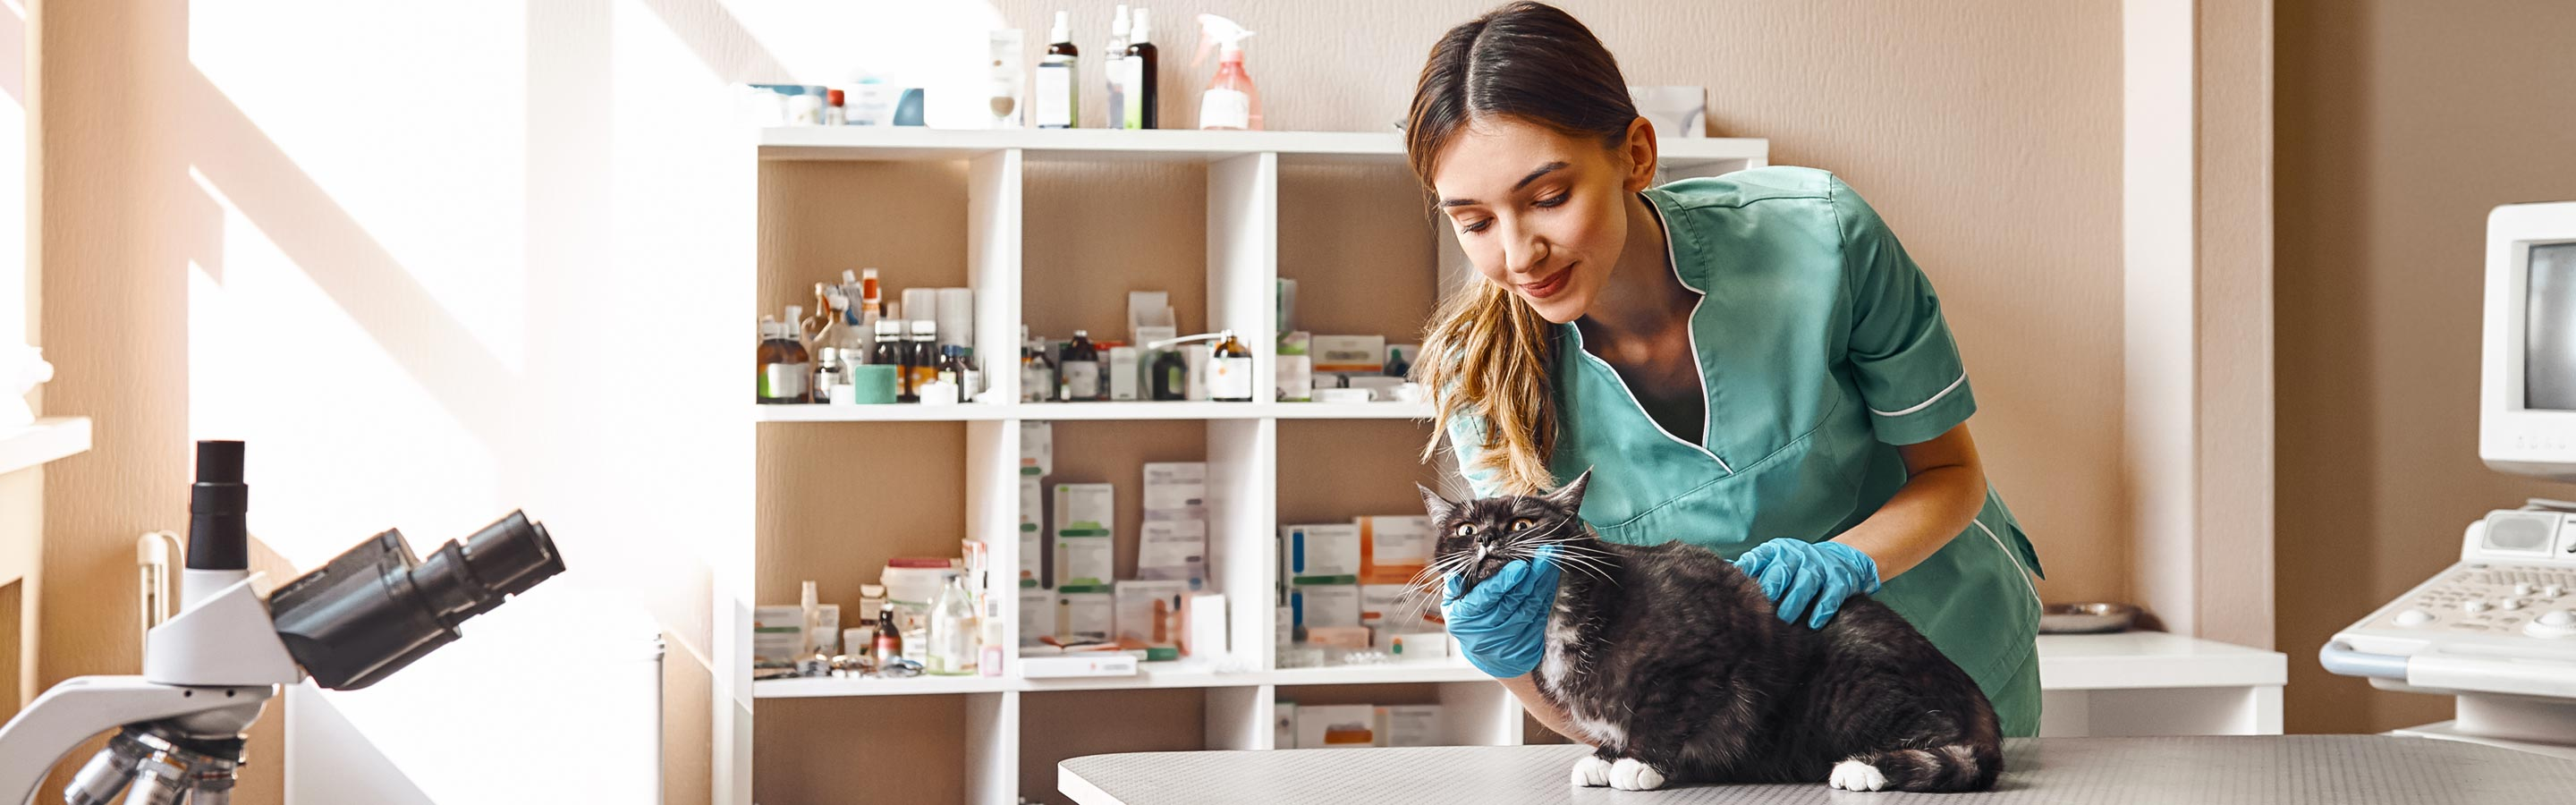 A female veterinary professional examines a cat in a clinic.